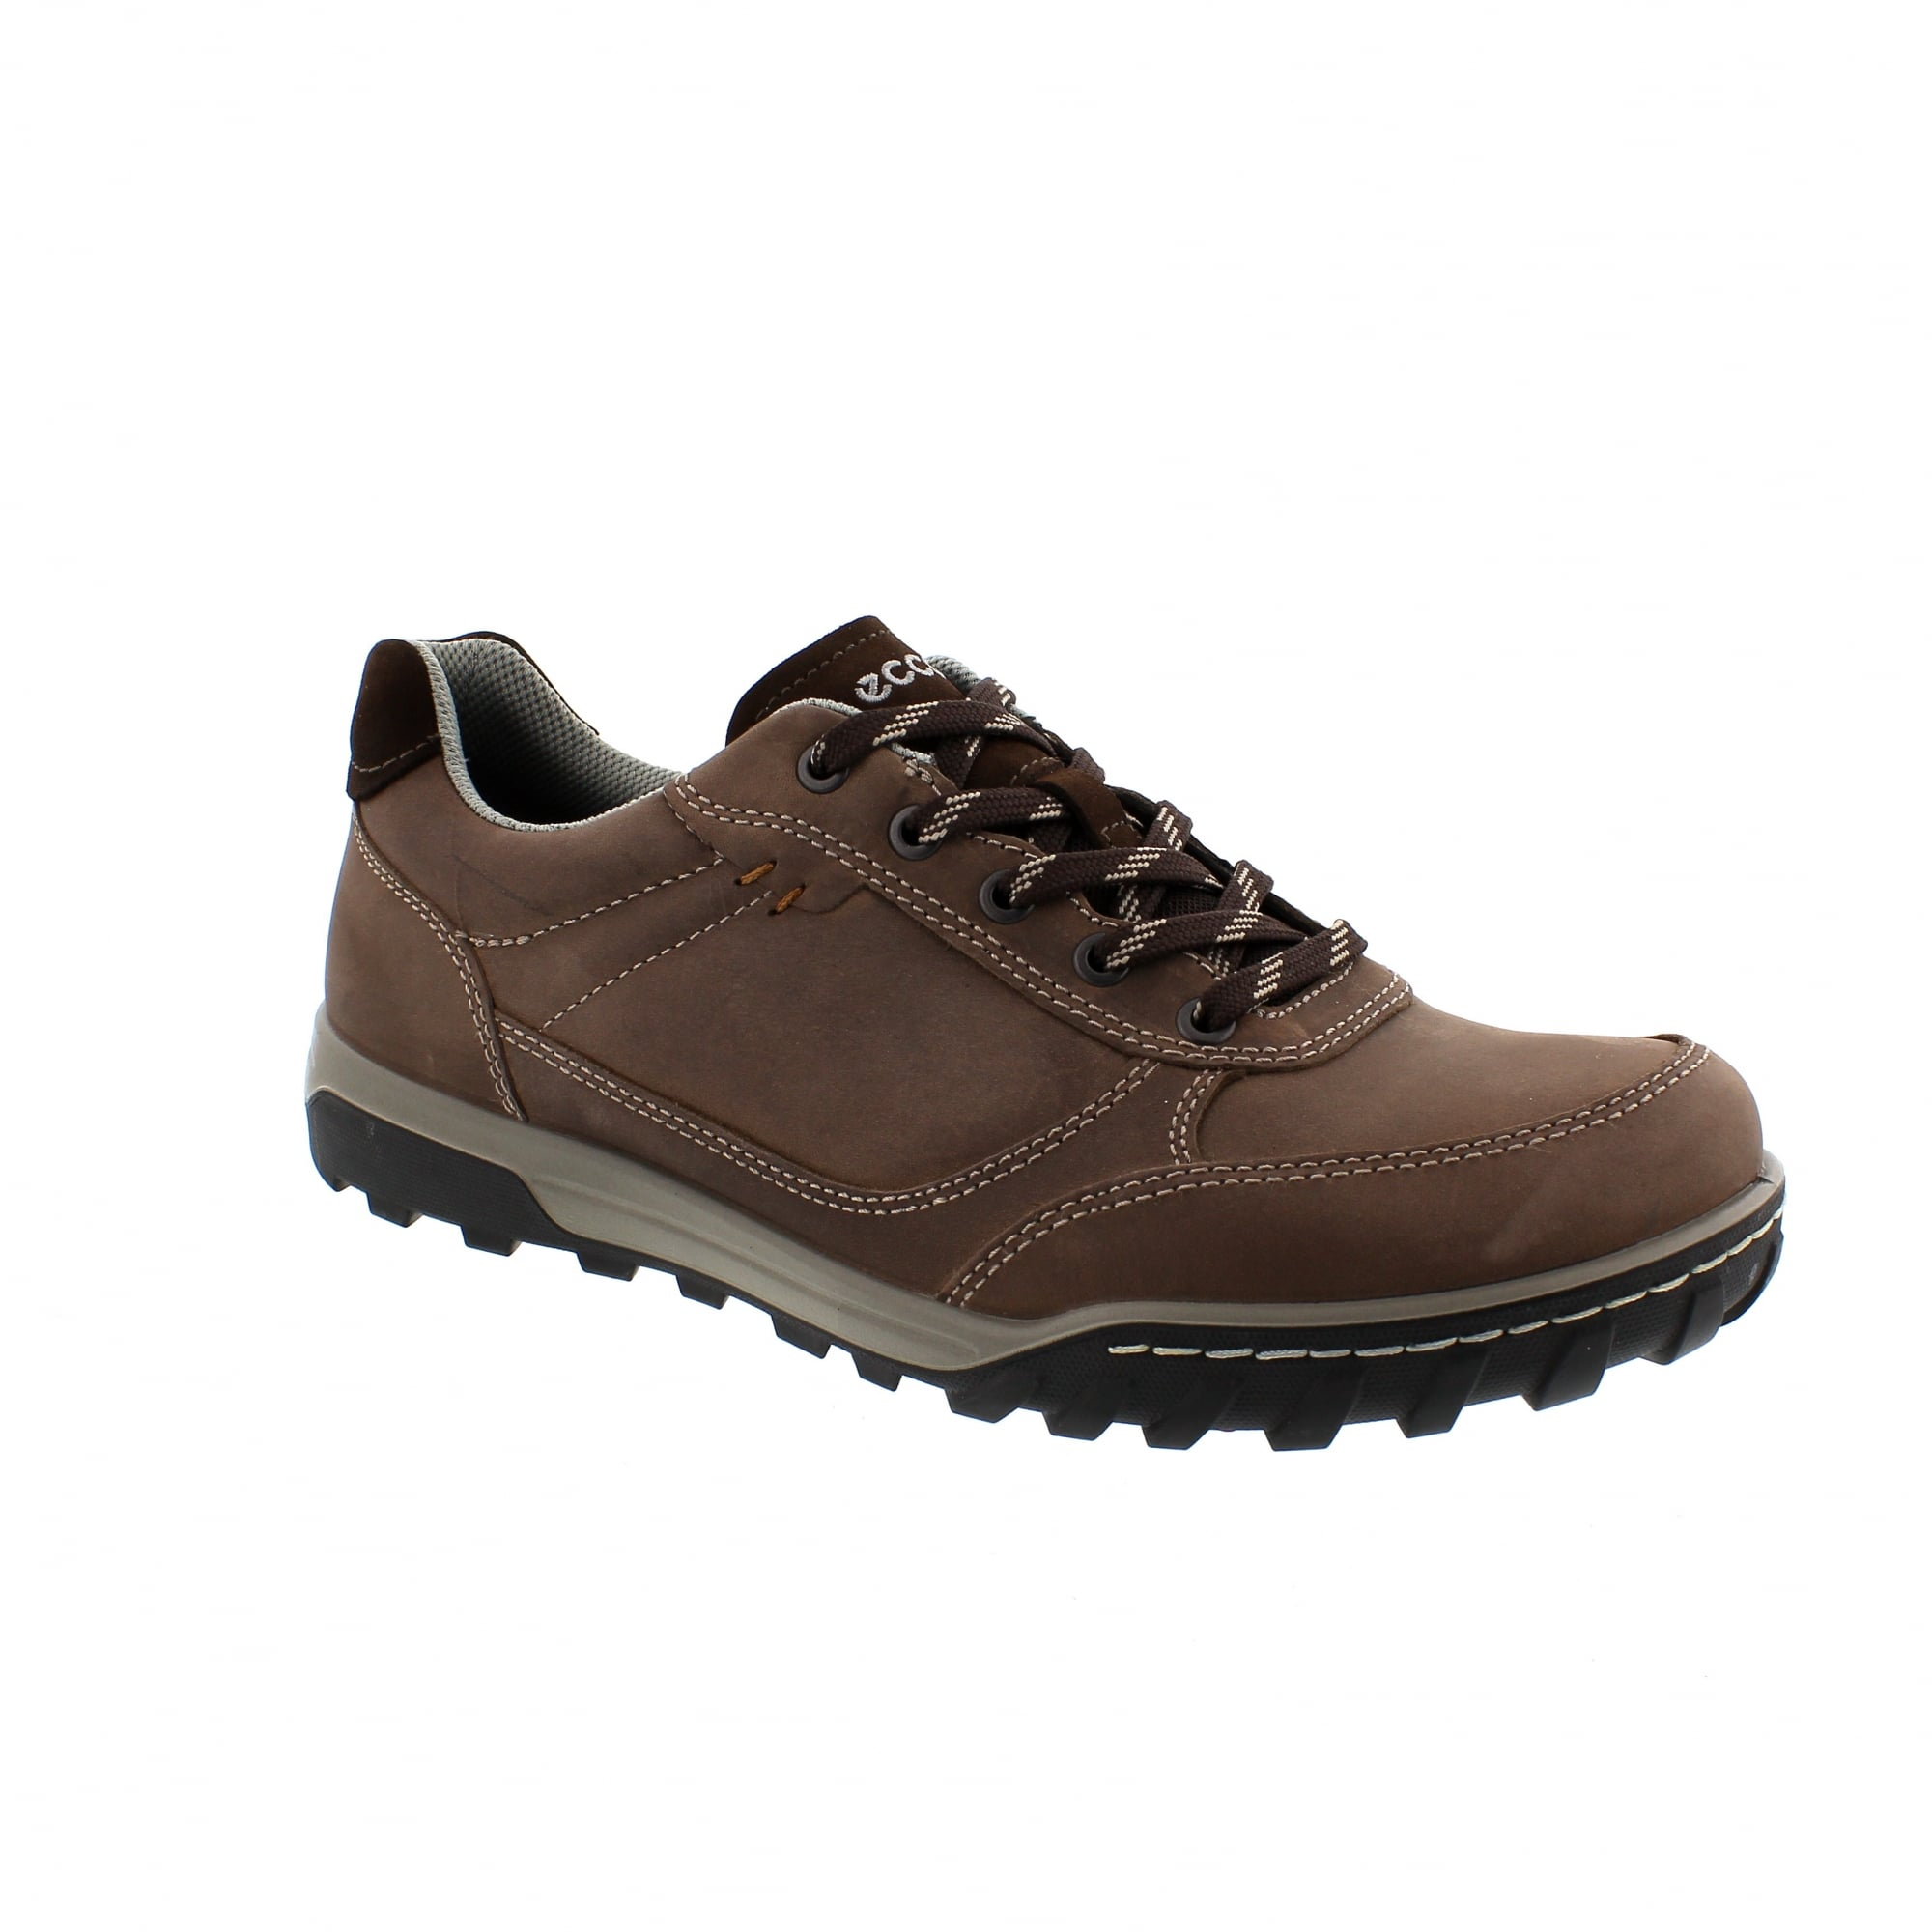 c39c04b7ec42 Ecco Urban Lifestyle 830654-51869 Mens Walking Shoes